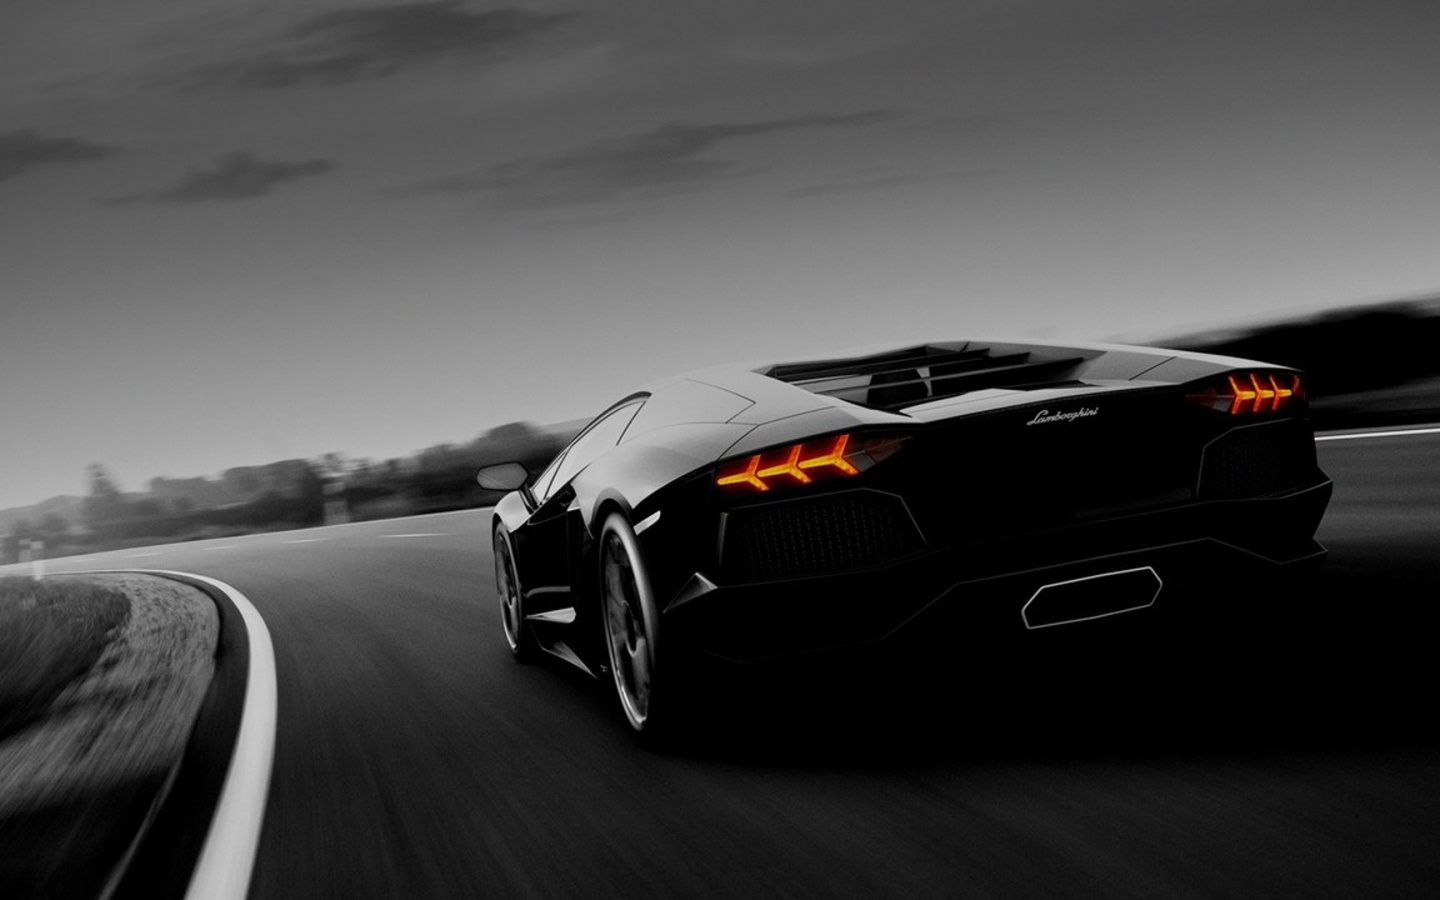 1440x900 Black Lamborghini Murcielago Racing Desktop PC And Mac Wallpaper